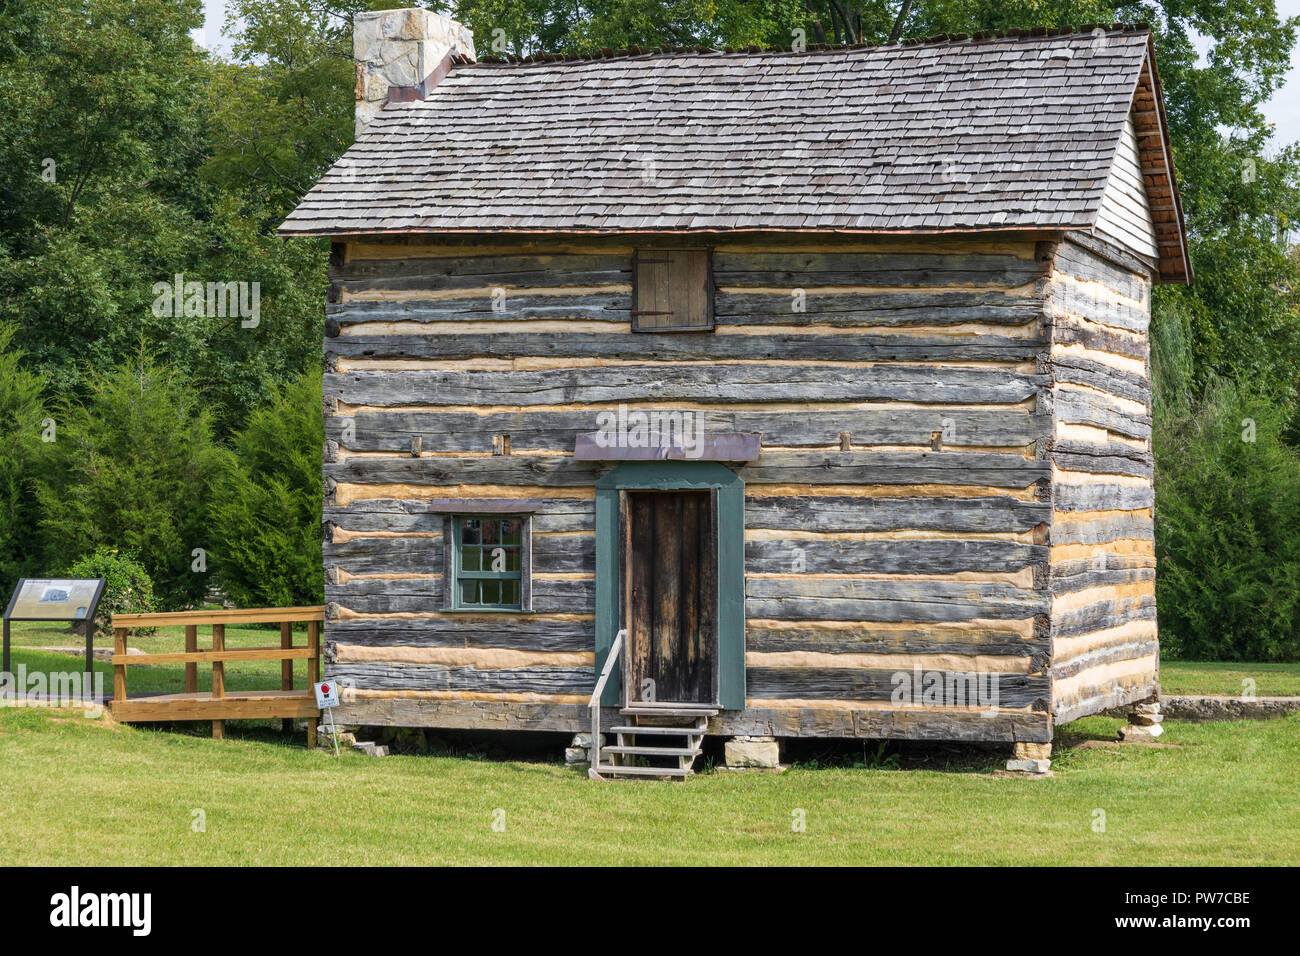 Greeneville, TN, USA-10-2-18: The Seth Babb log house was built in 1787 of oak logs.  In 2015 it was disassembled and moved to the present site. - Stock Image